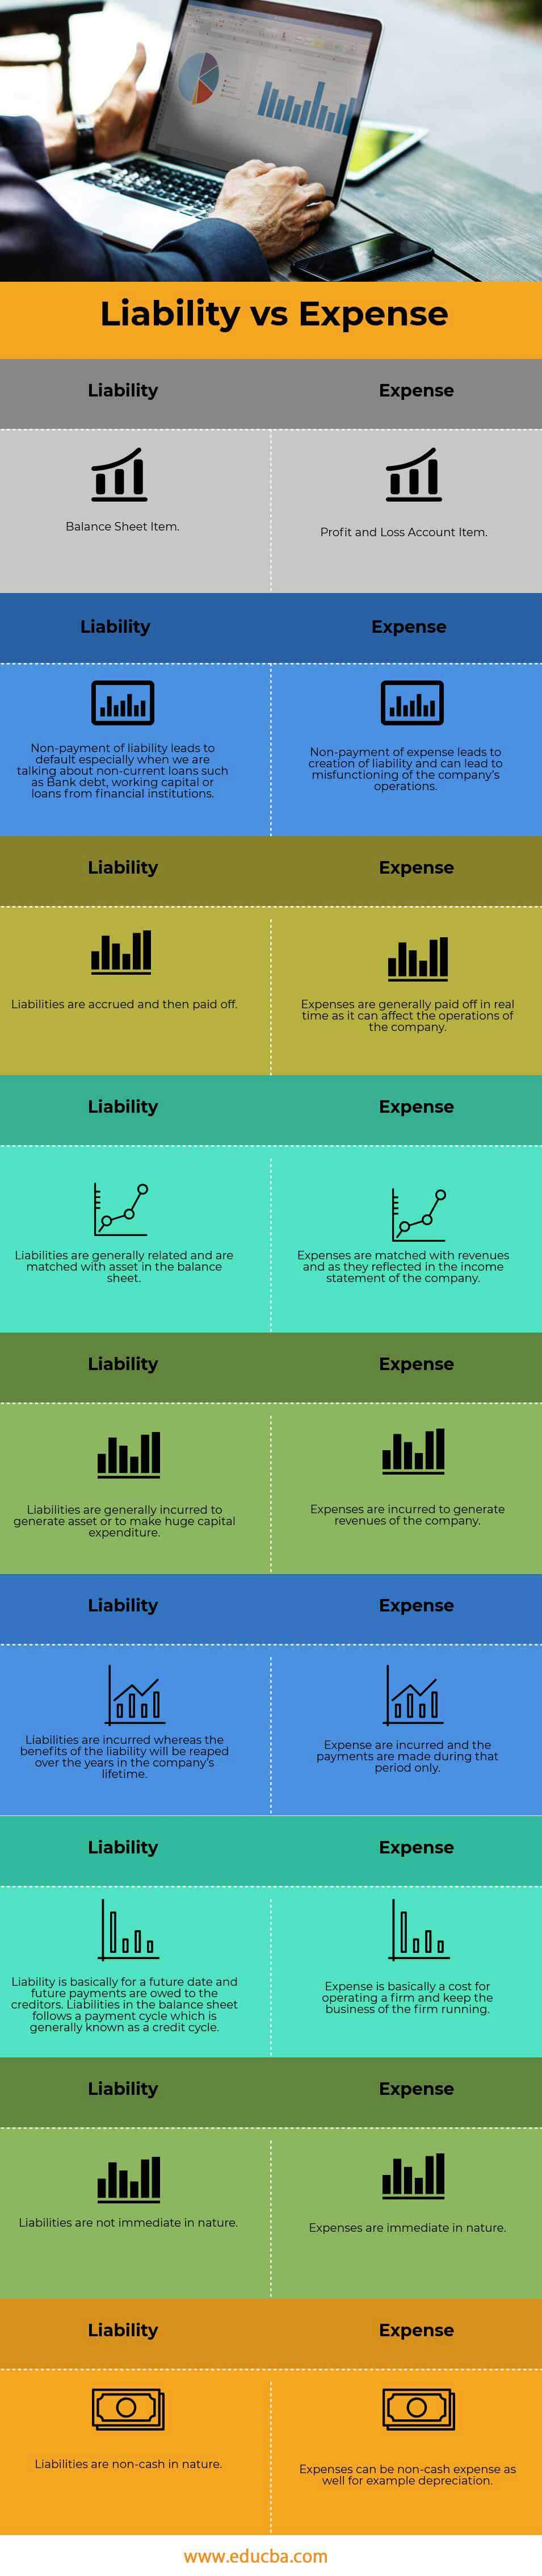 Liability-vs-Expense-info